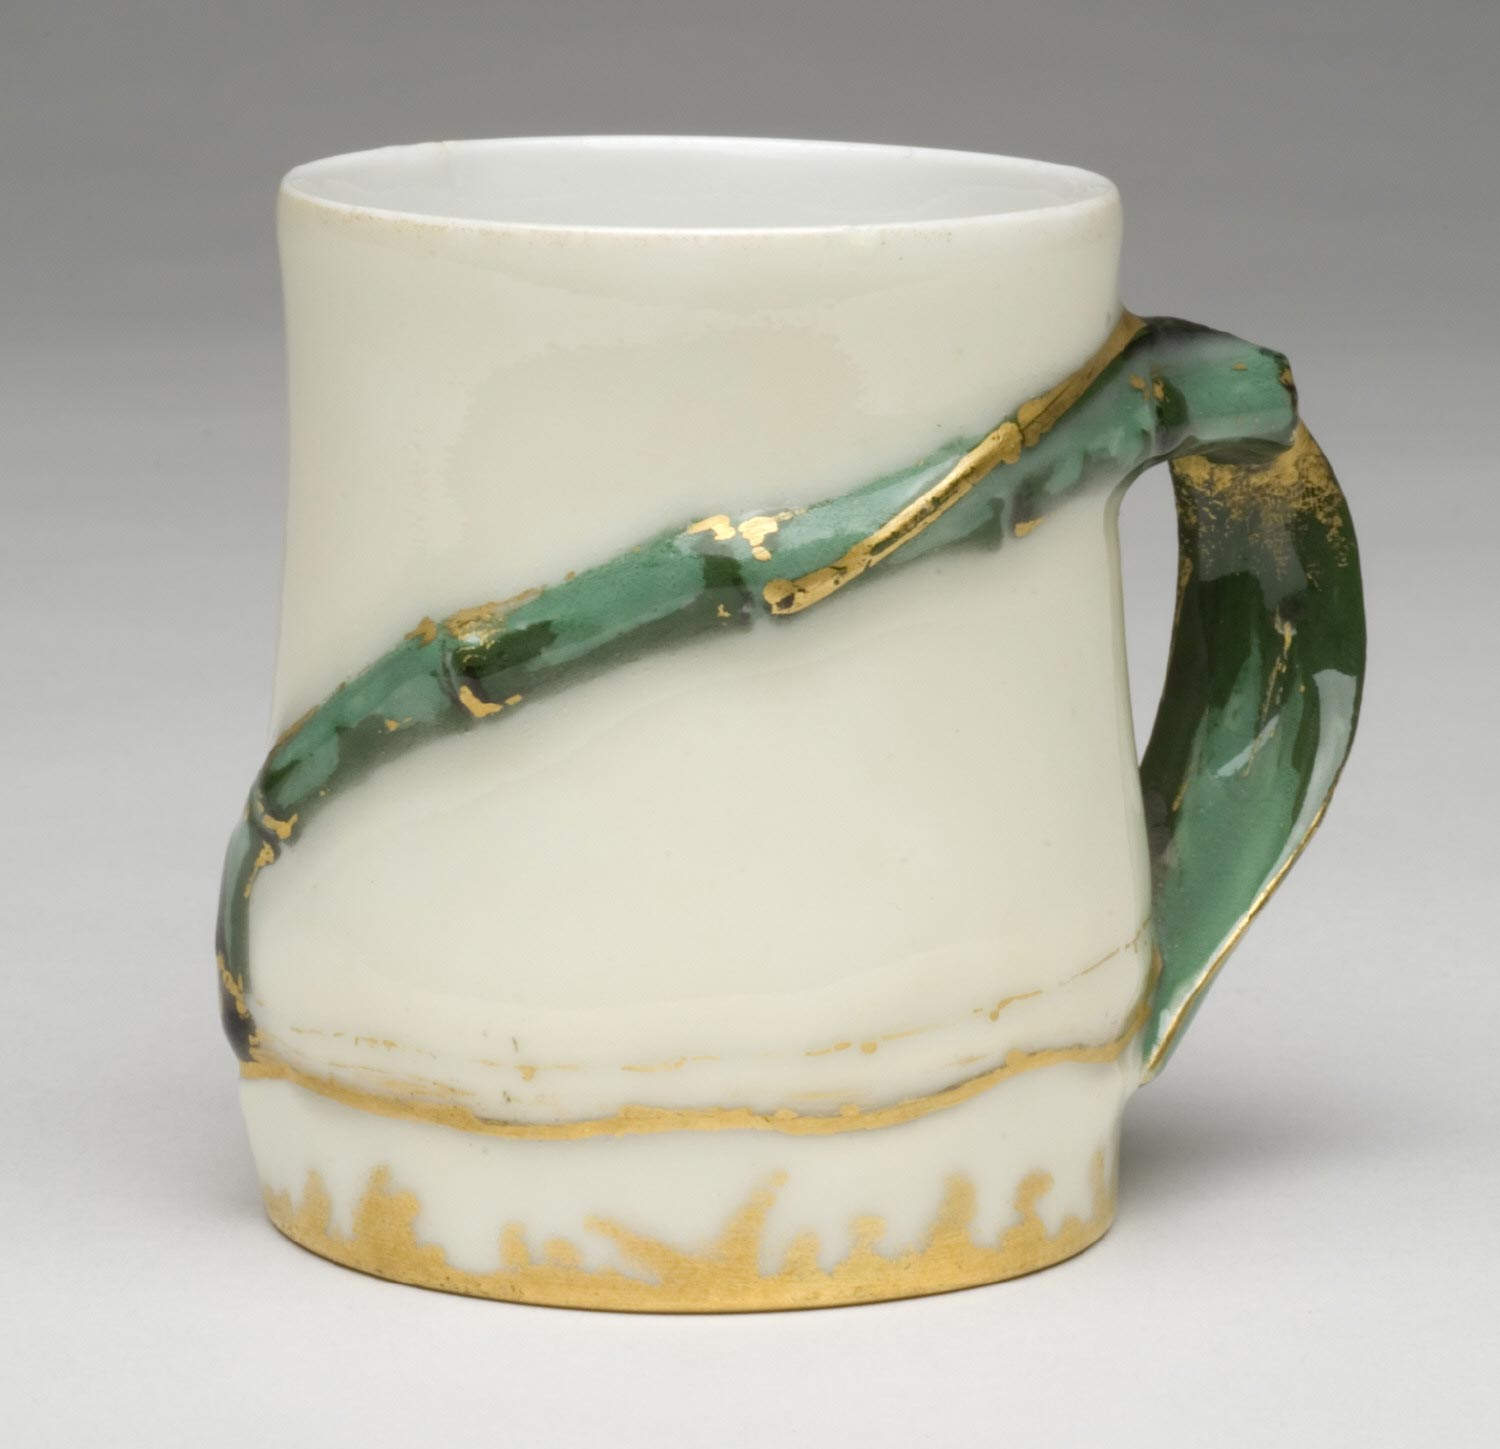 After-Dinner Coffee Cup